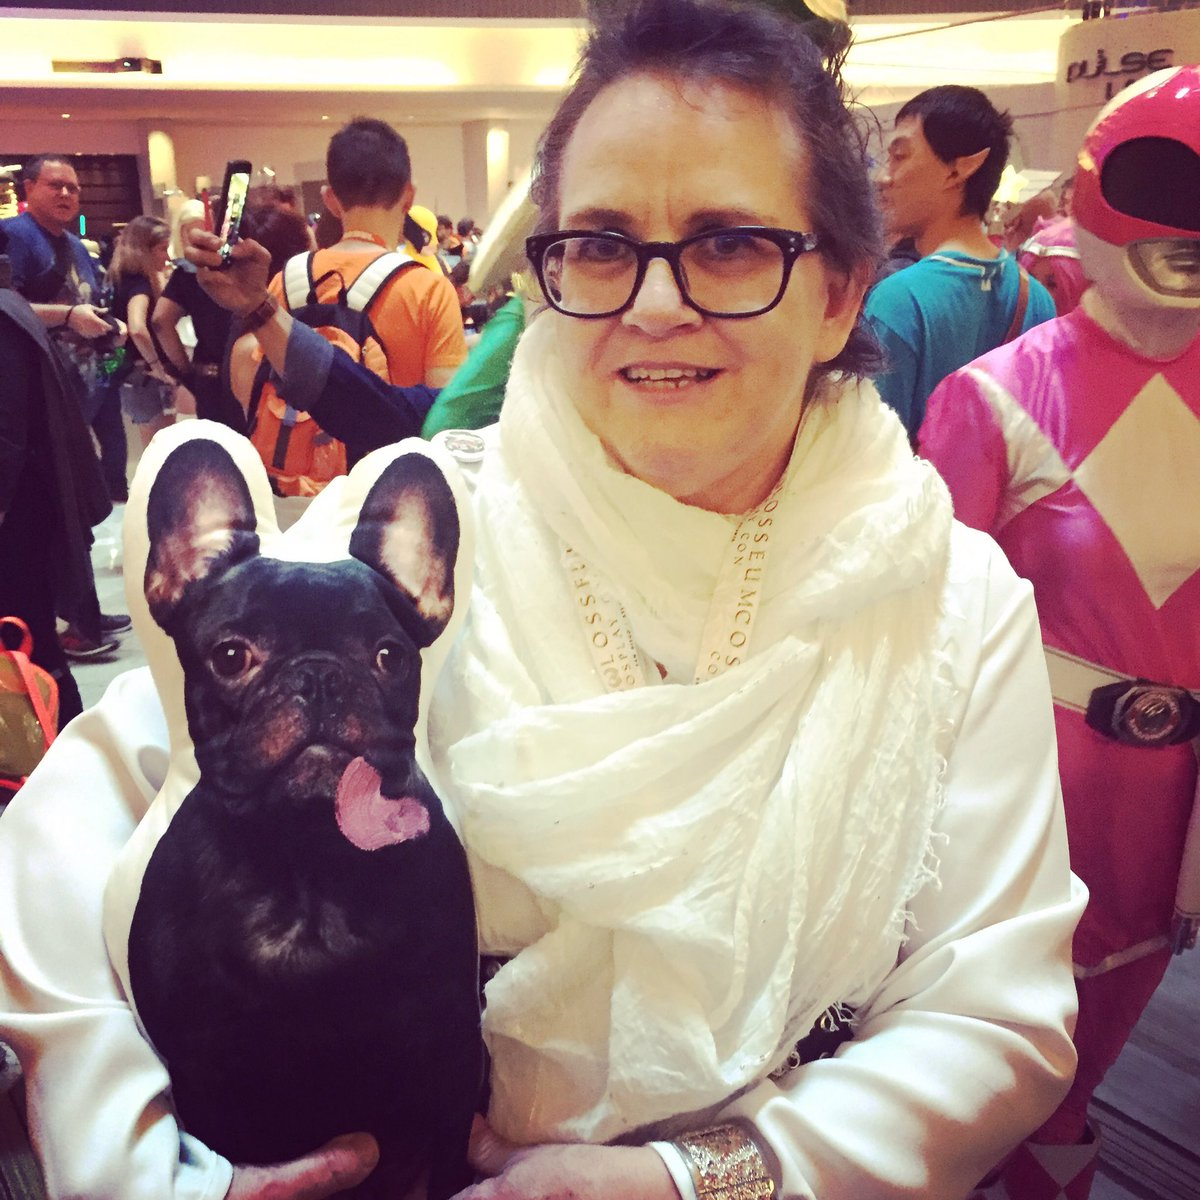 Carrie and Gary Fisher Cosplay. #dragoncon #starwars https://t.co/ulfOv737Ys